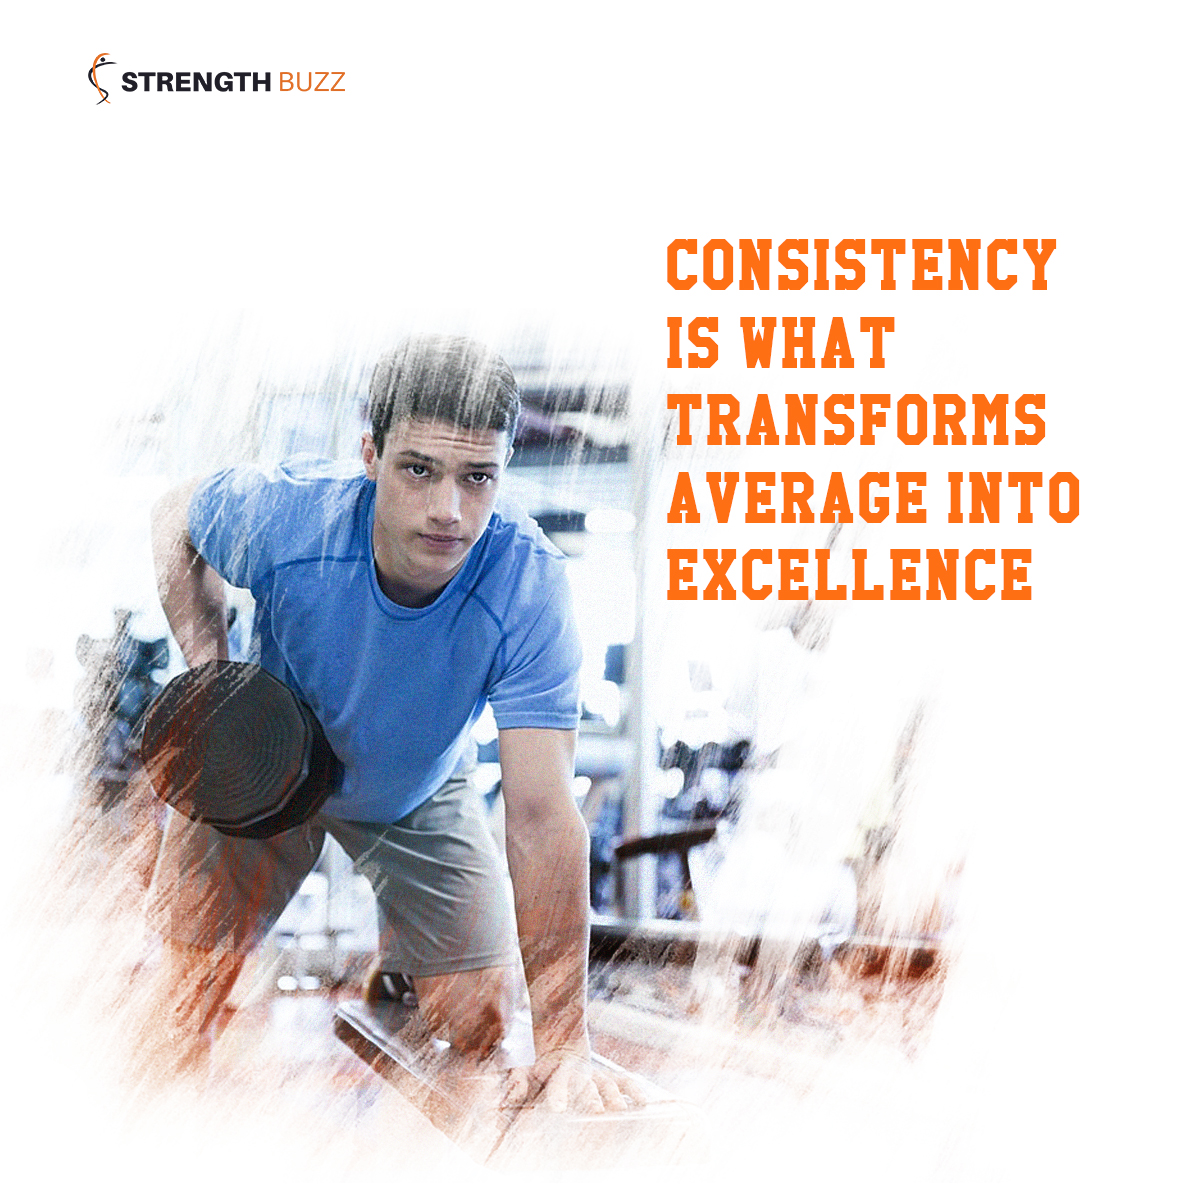 Gym Motivation Quotes - Consistency is what transforms average into excellence